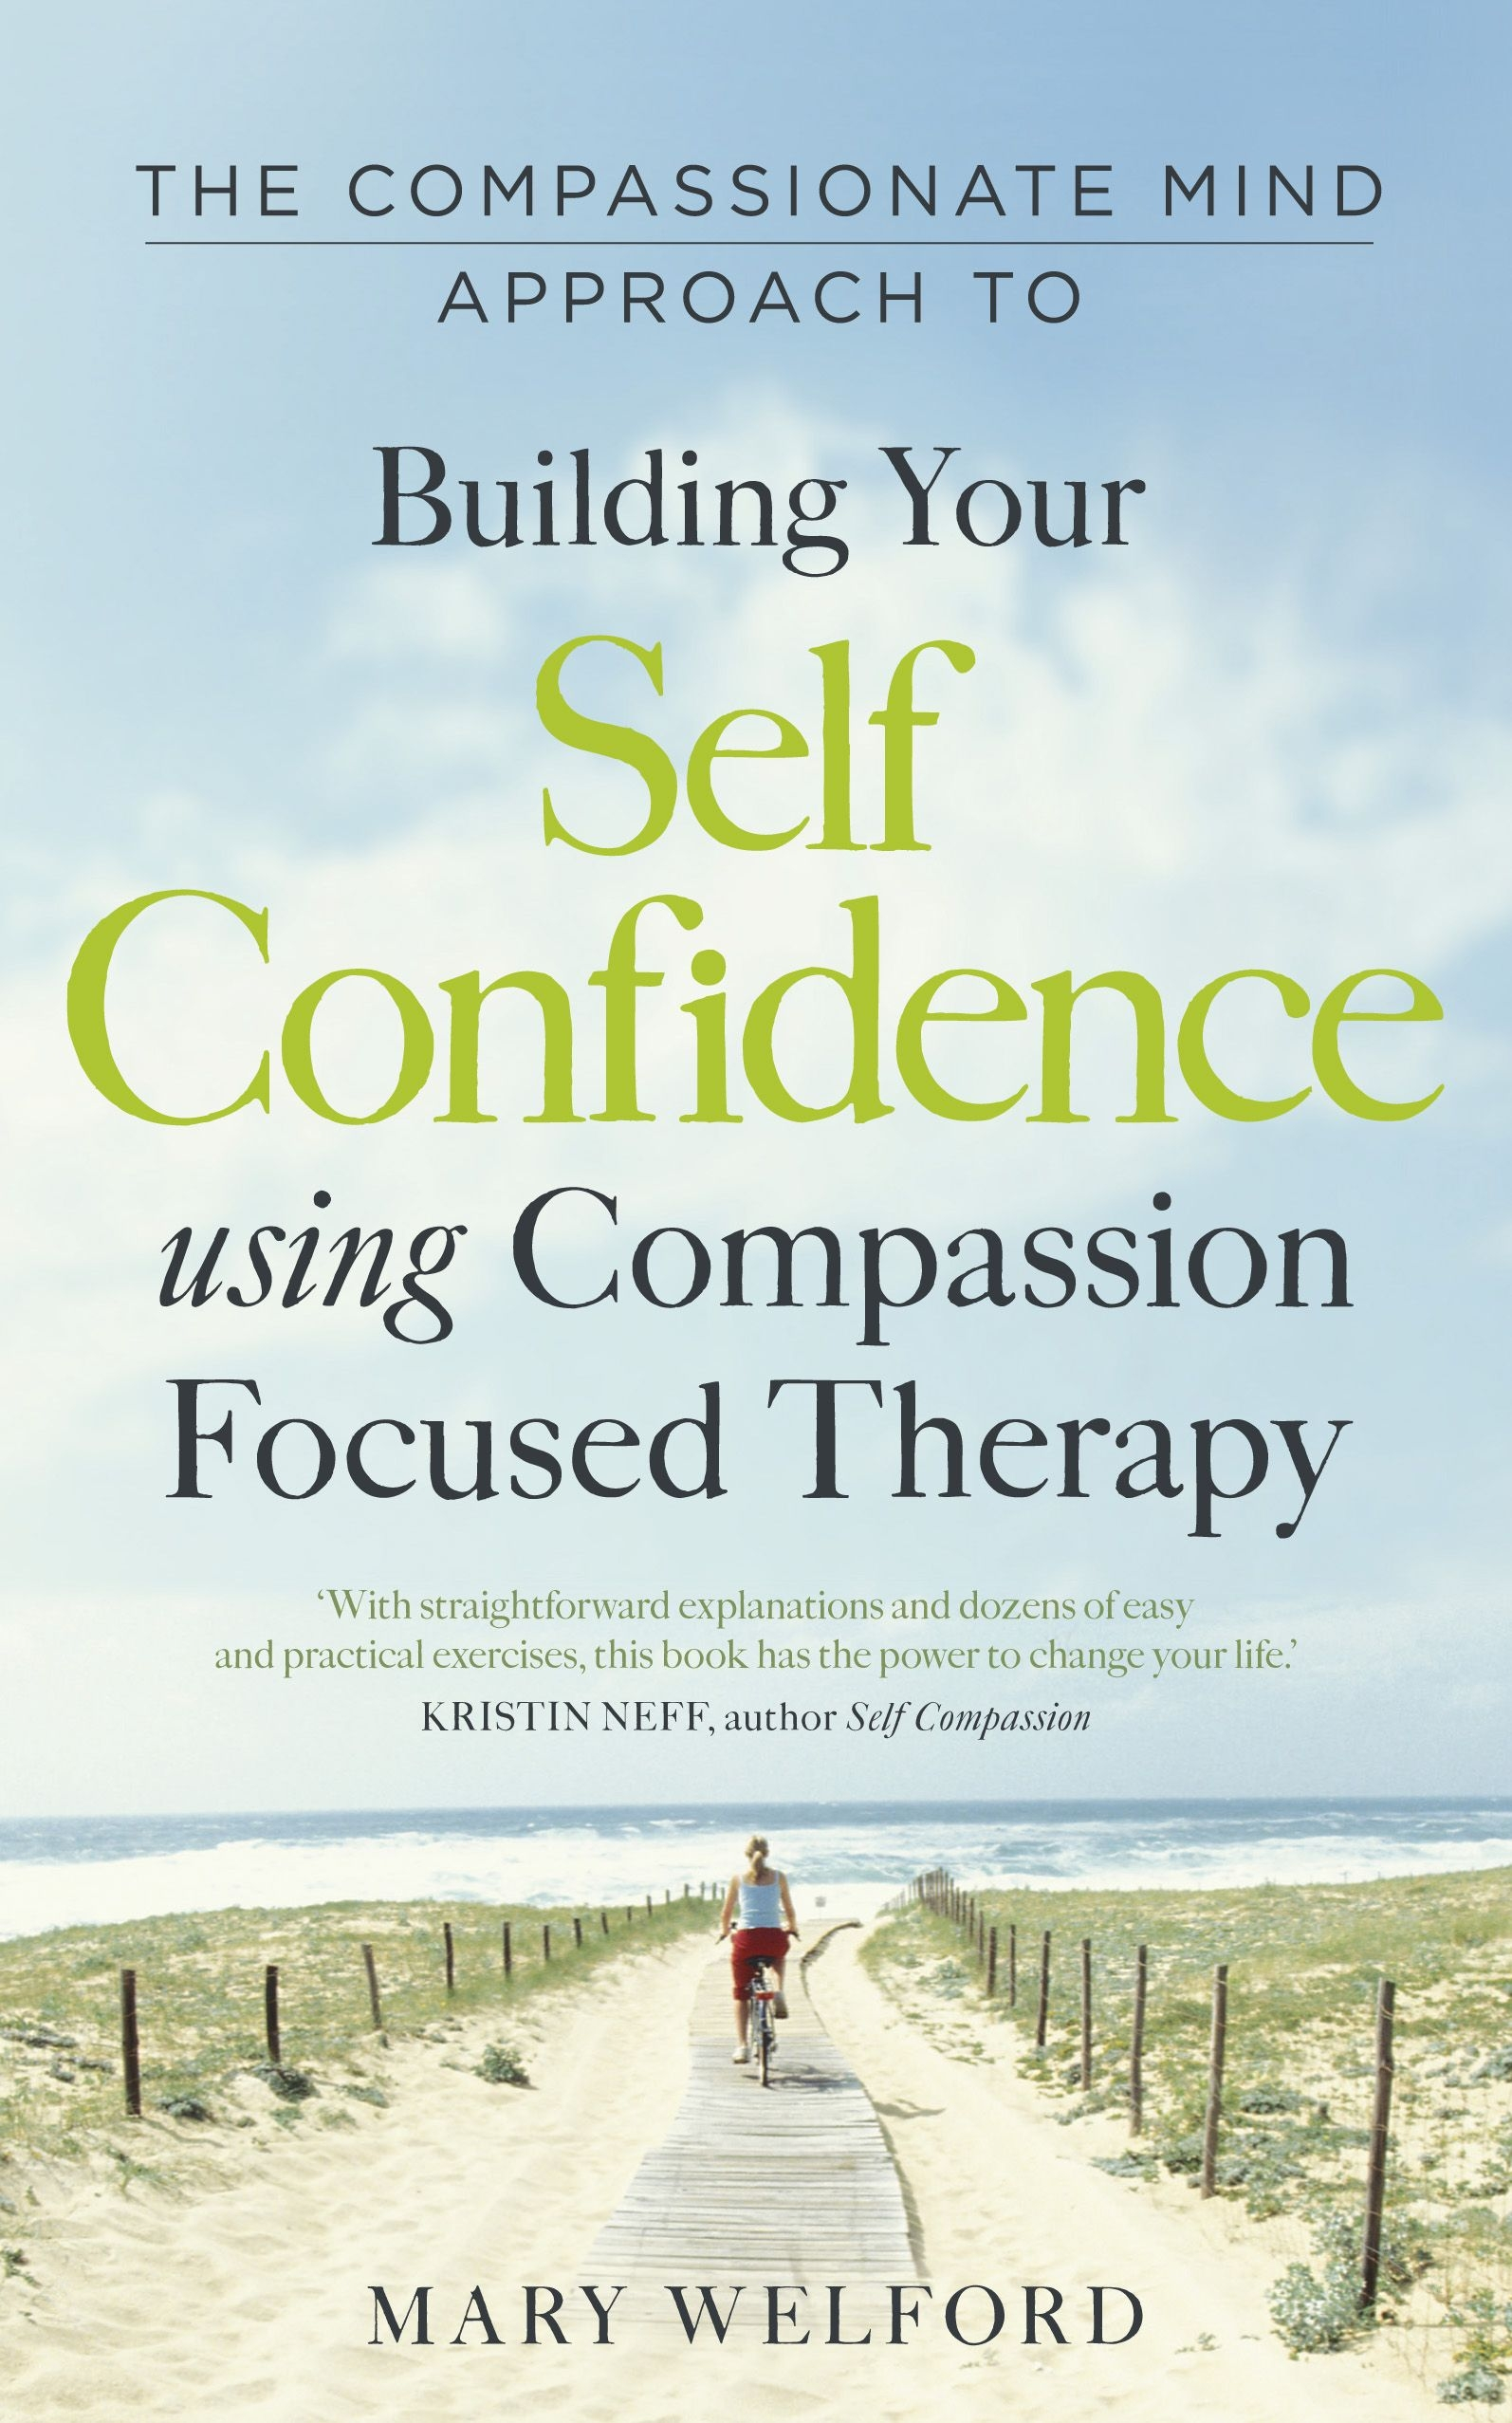 The Compassionate Mind Approach to Building Self-Confidence